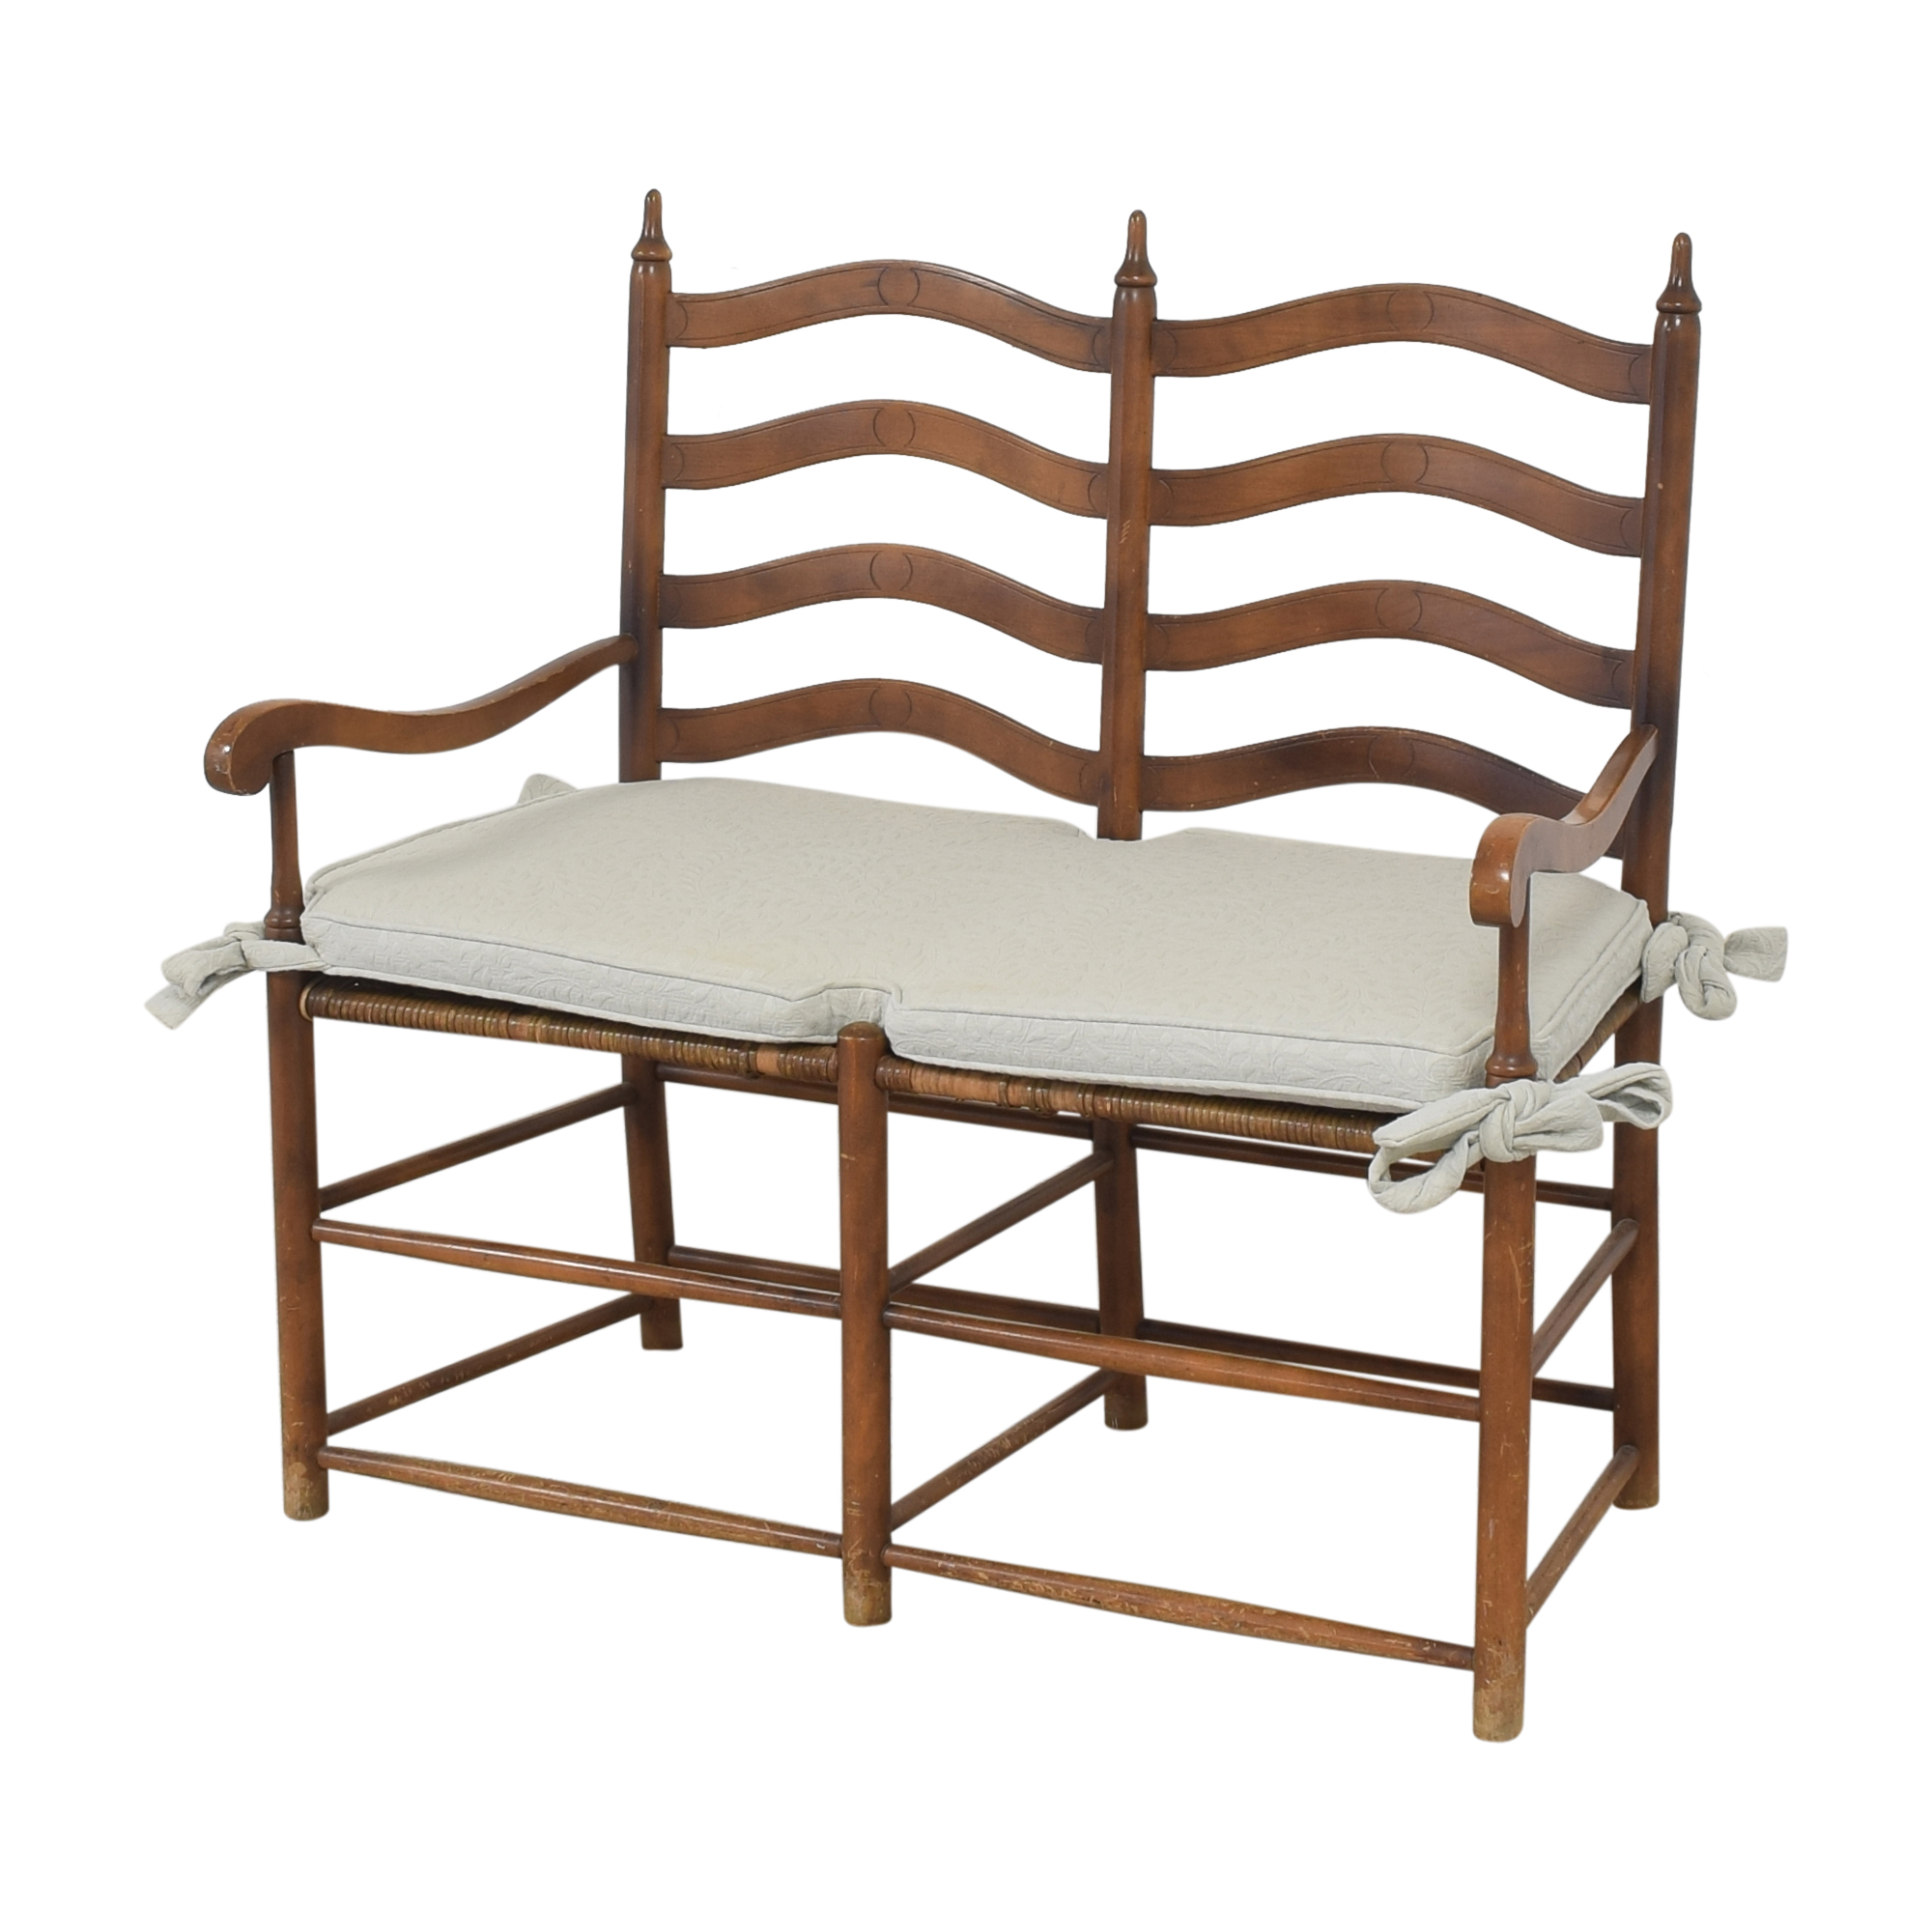 Ladderback Settee Bench with Cushion Chairs